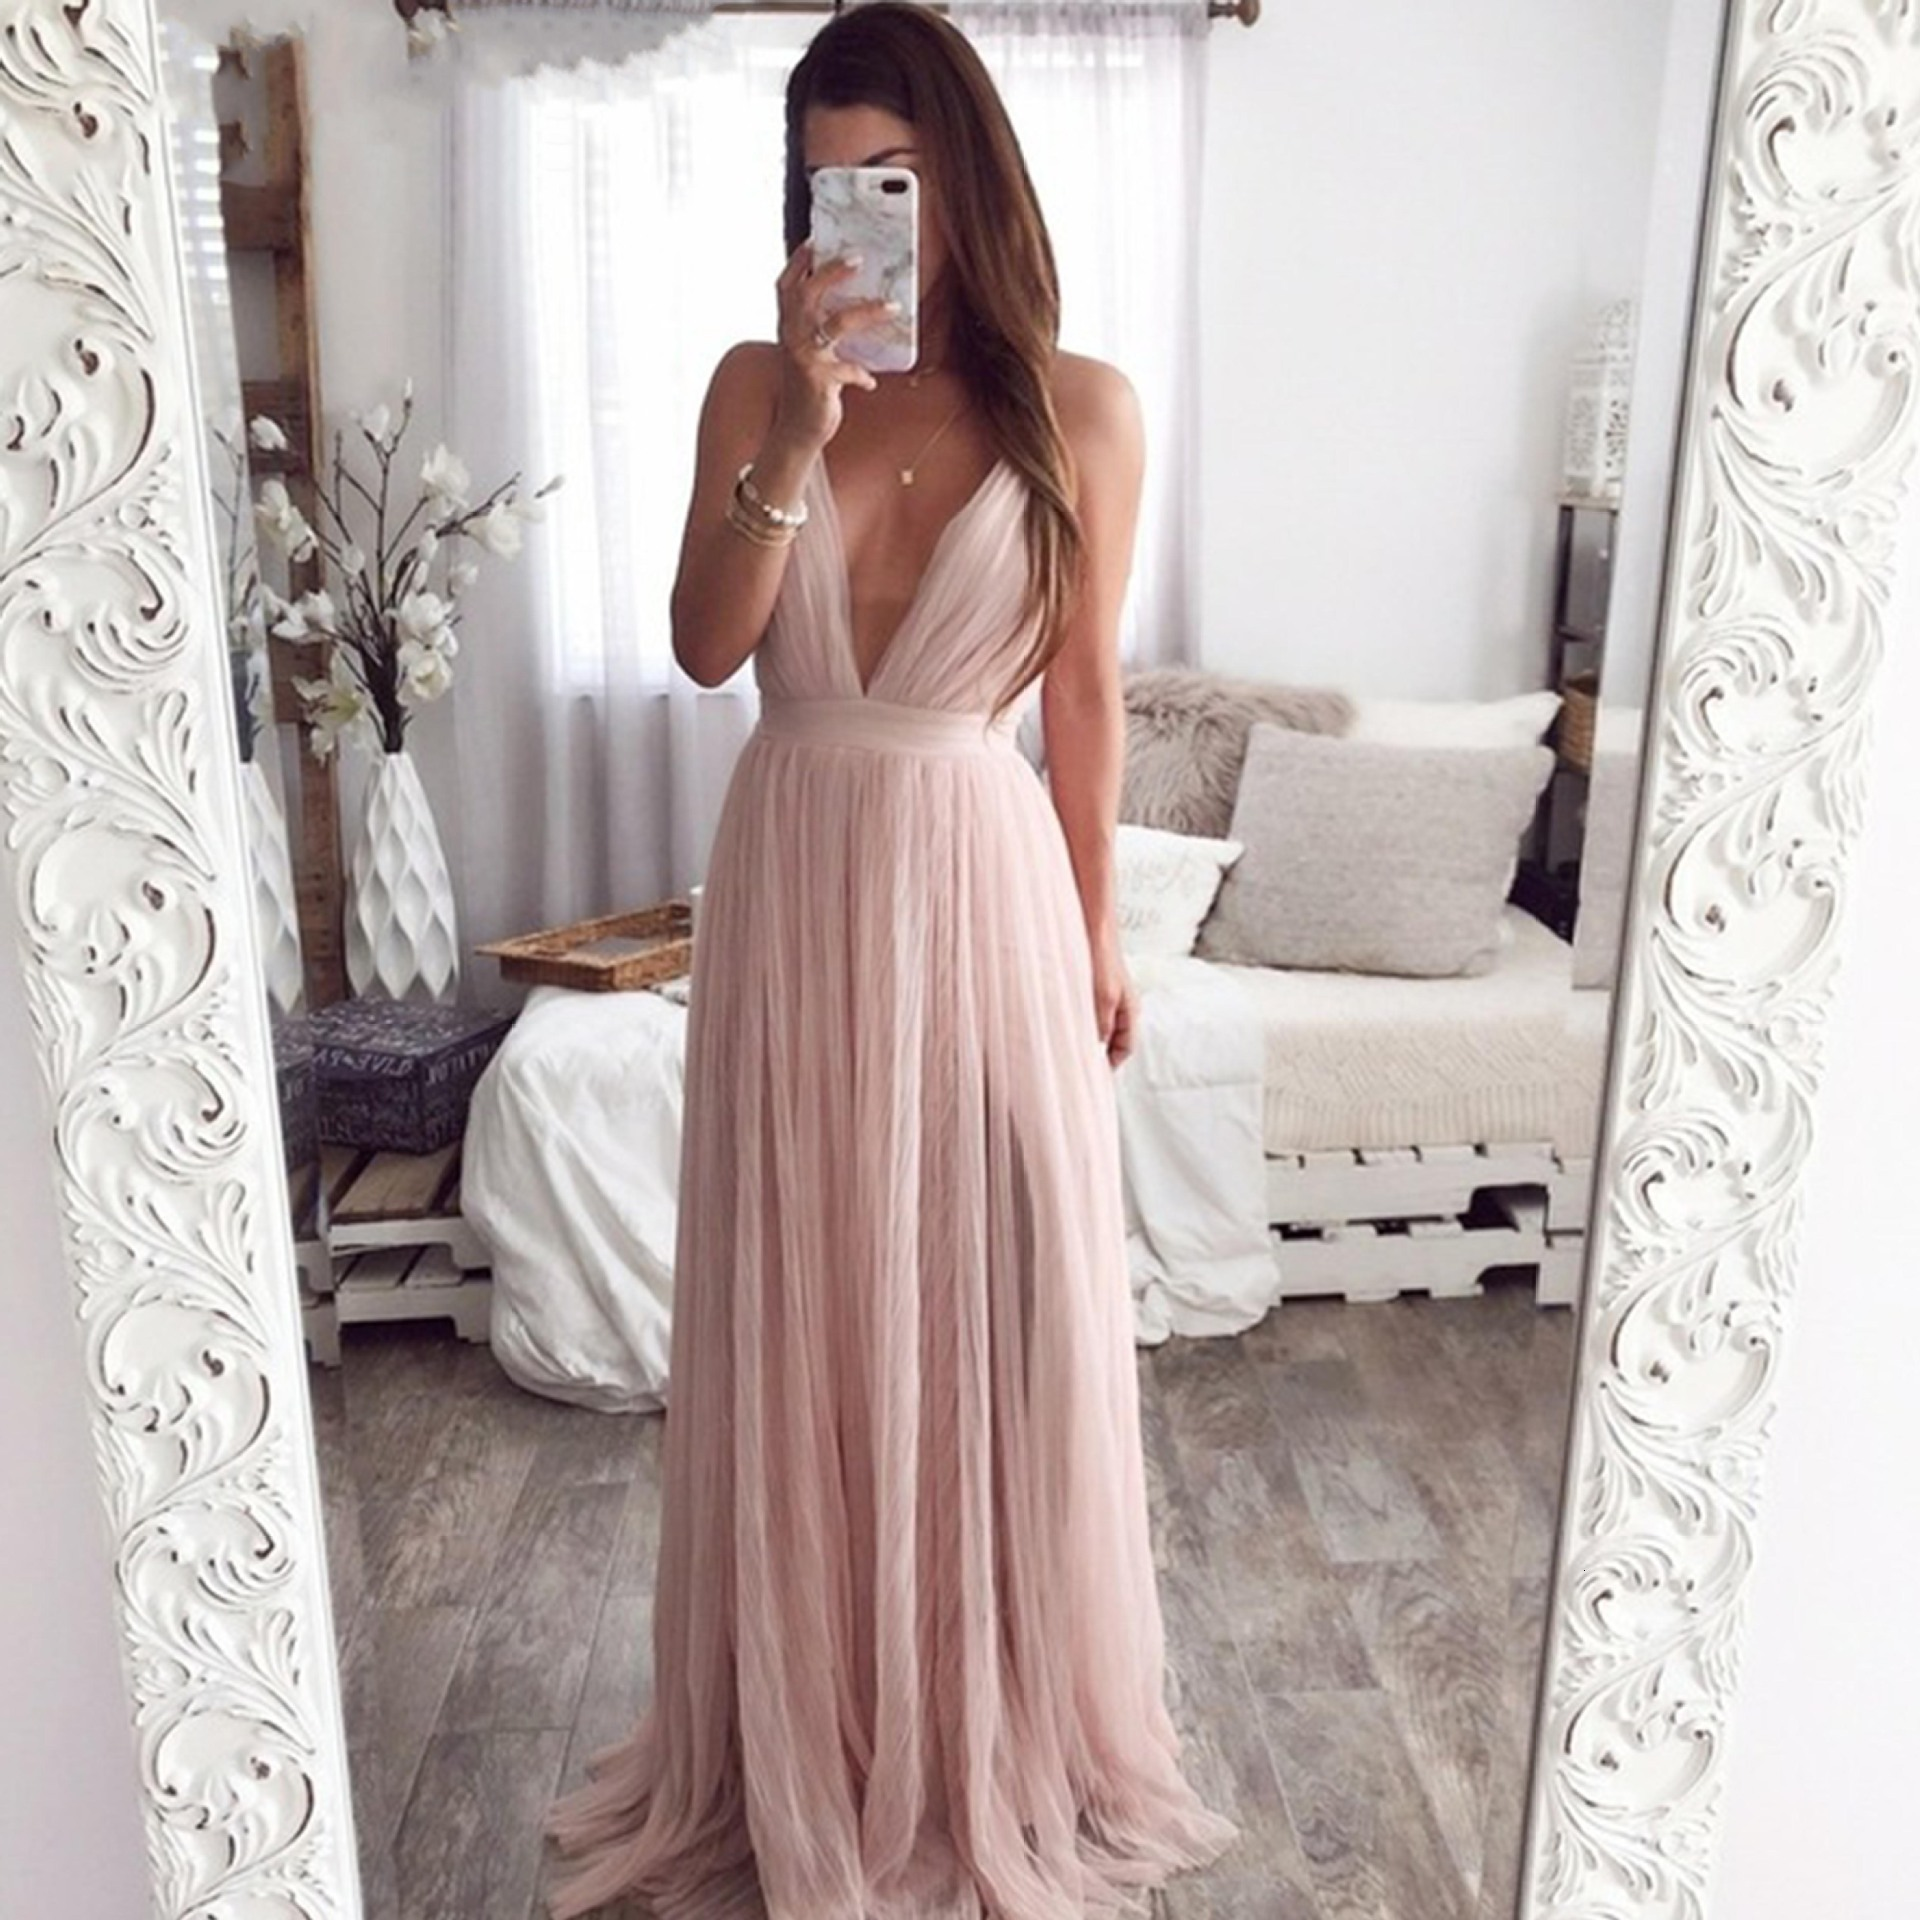 BacklakeGirls 2019 Sexy Deep V Neck Cross Criss Back Long Evening Dress Pink Tulle Elegant Long Prom Dress Robe De Soiree